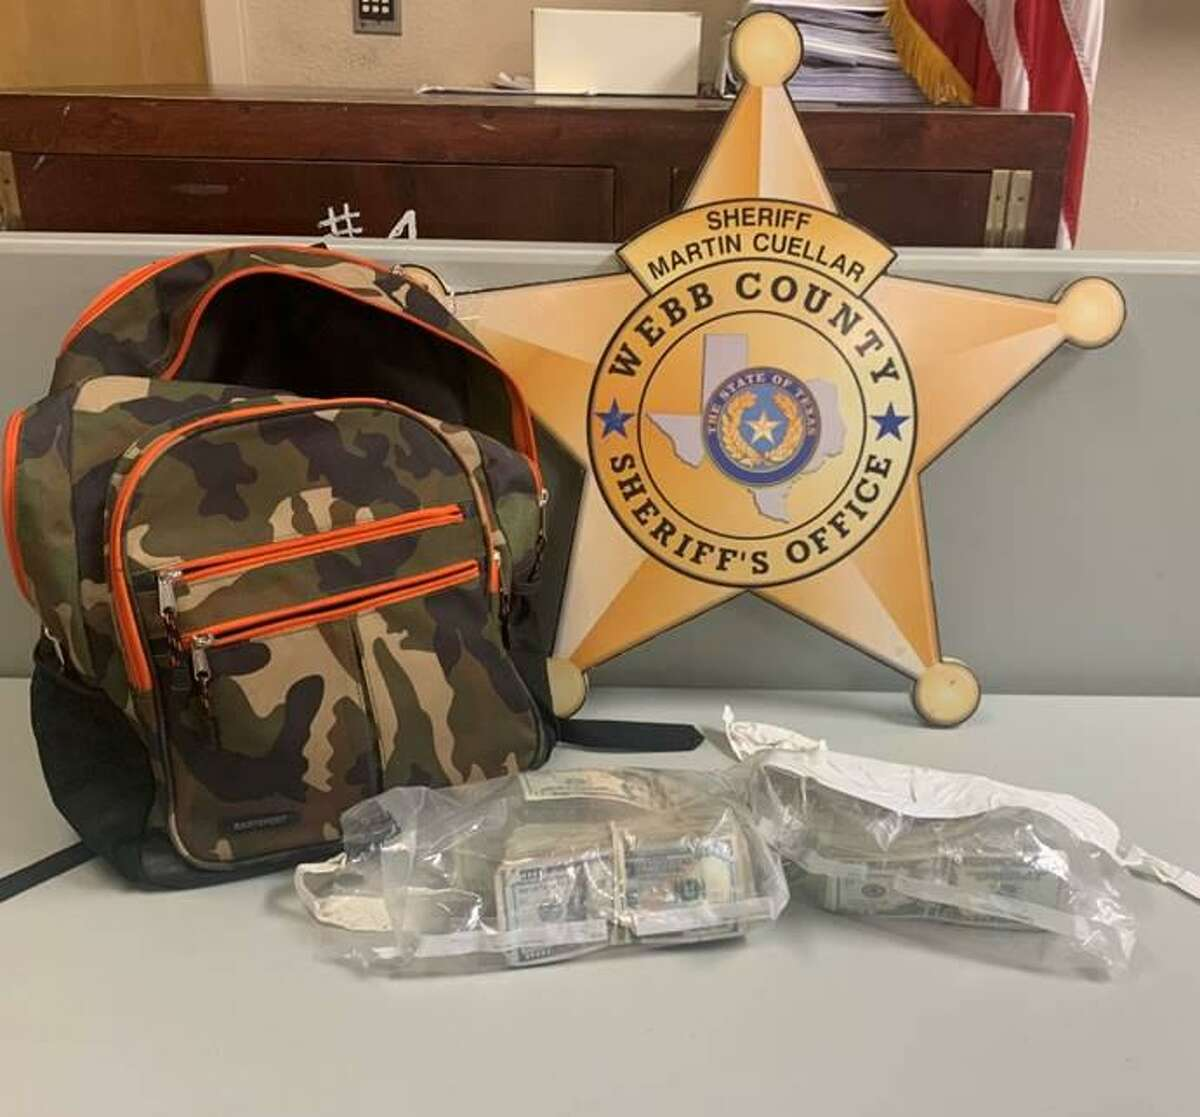 The Webb County Sheriff's Office seized more than $25,000 during a traffic stop on Wednesday in north Laredo.